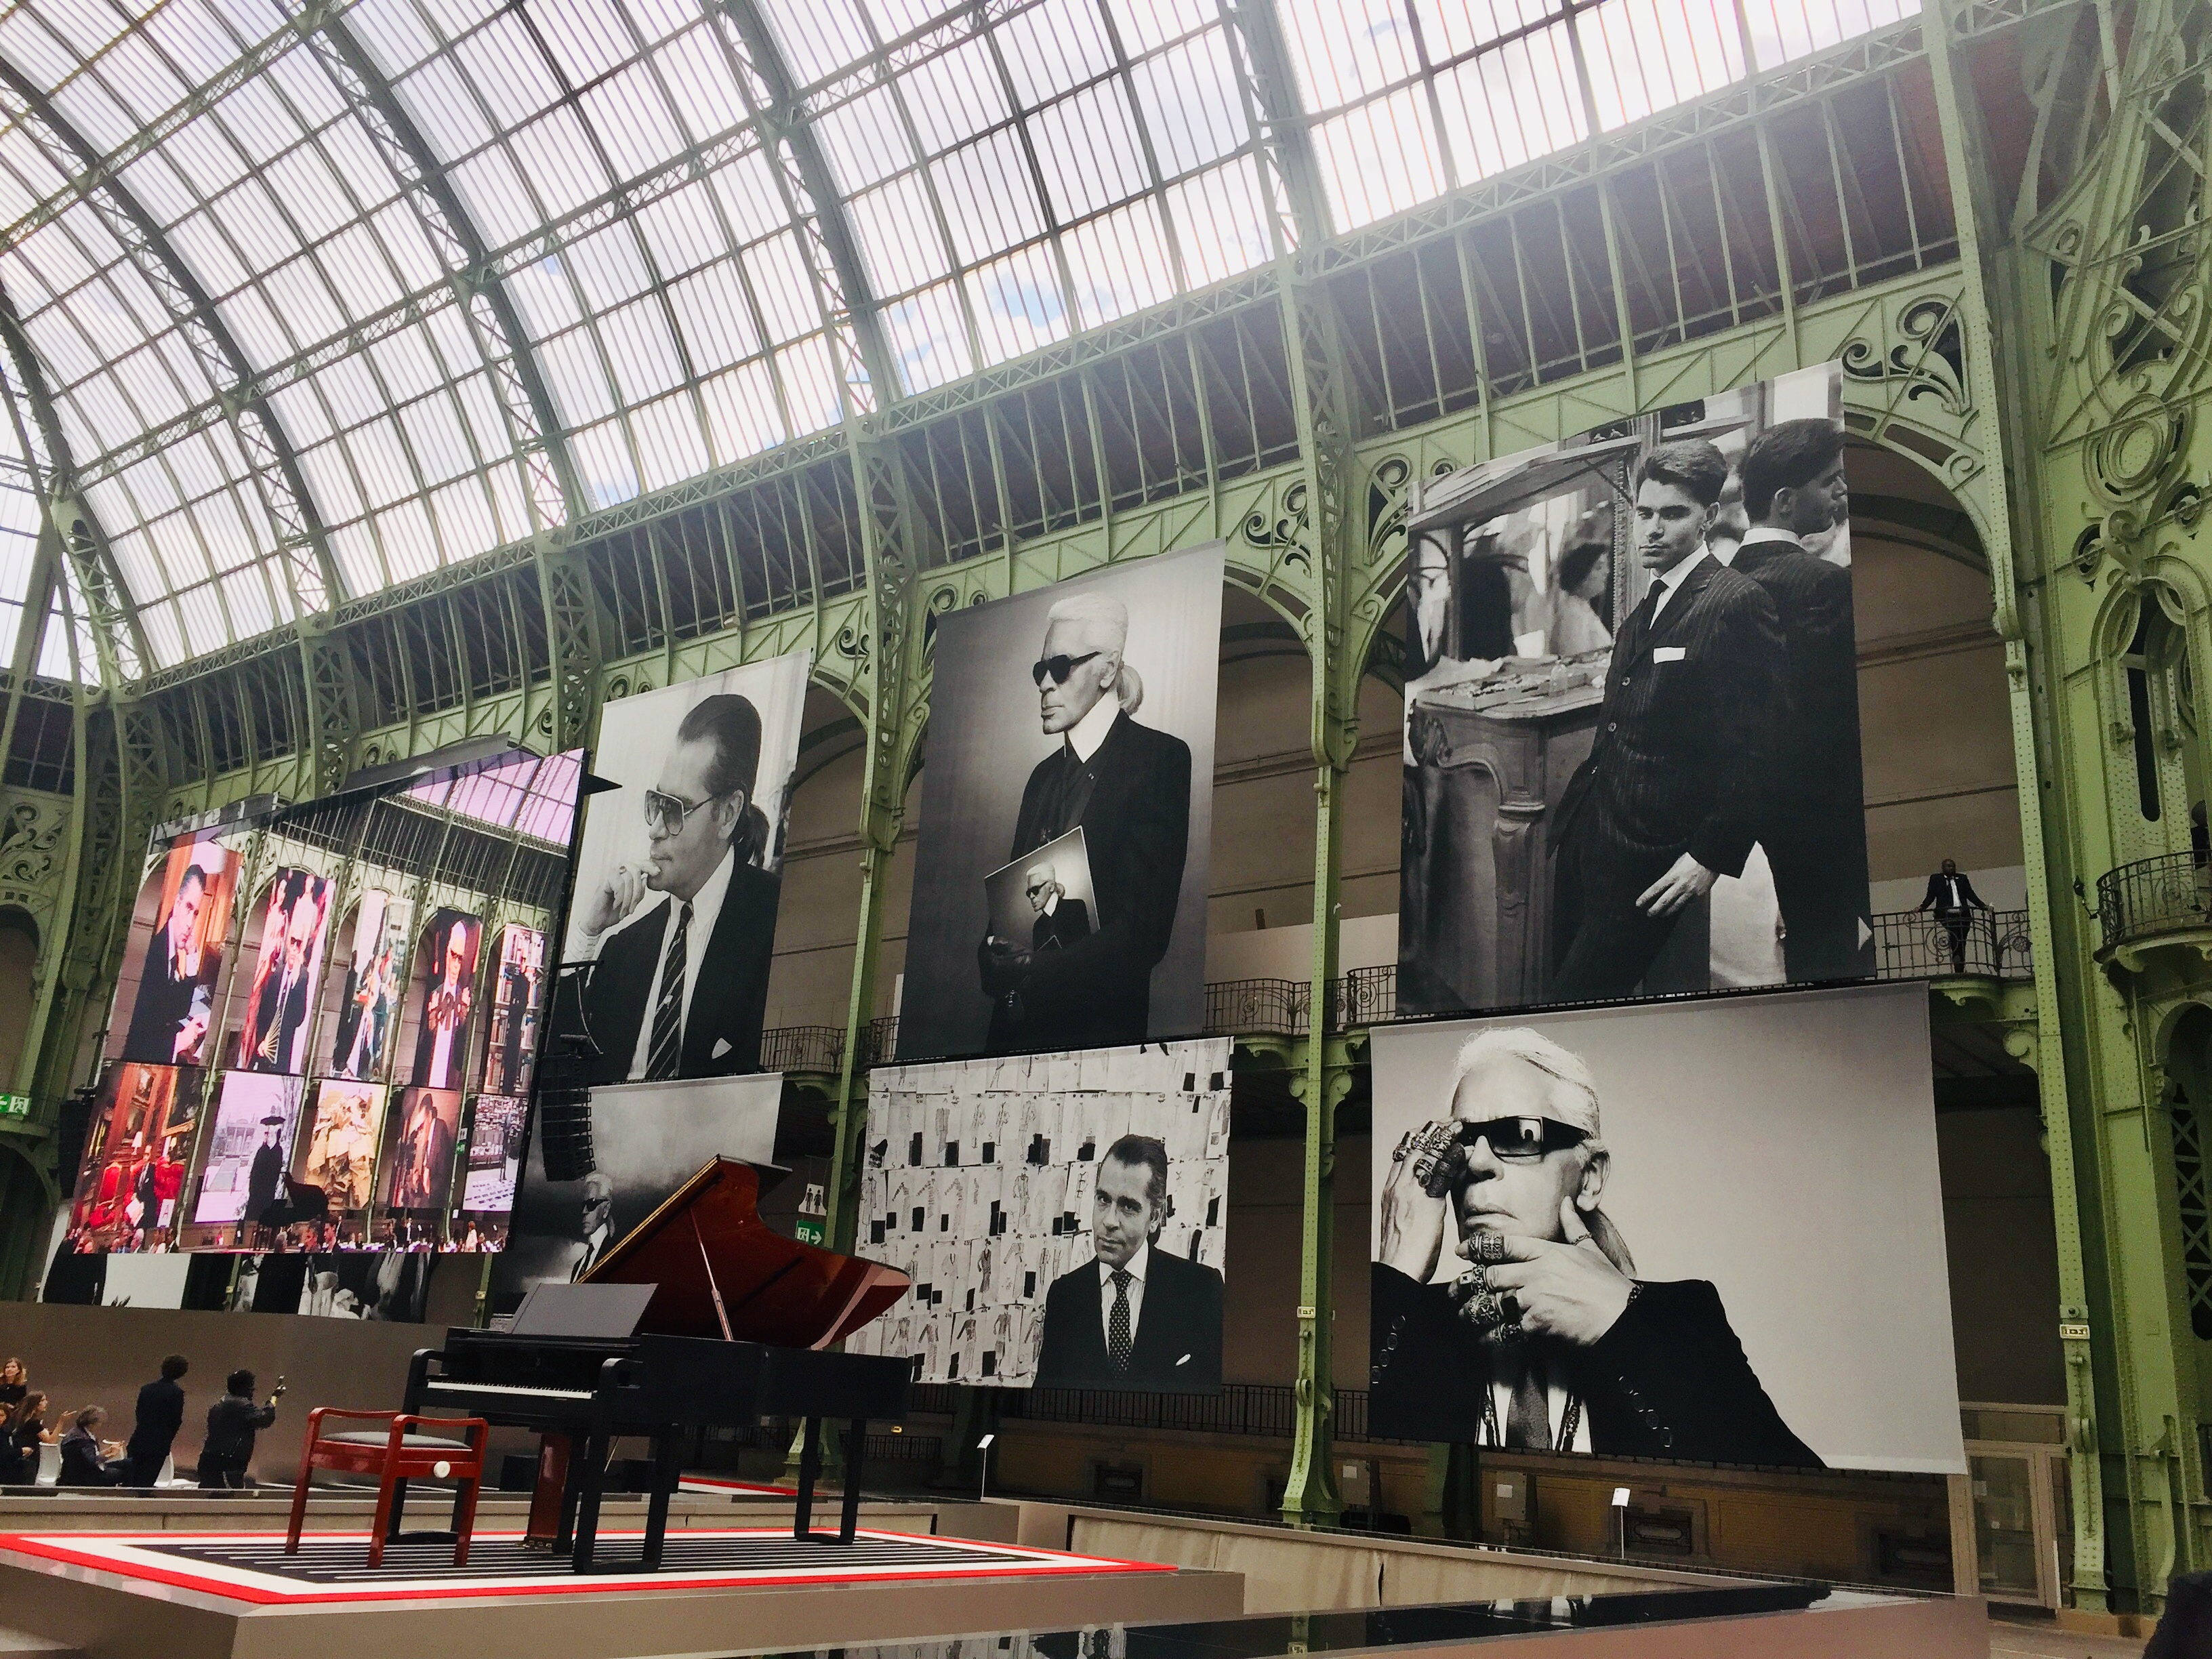 The set at the Karl for Ever celebration in Paris